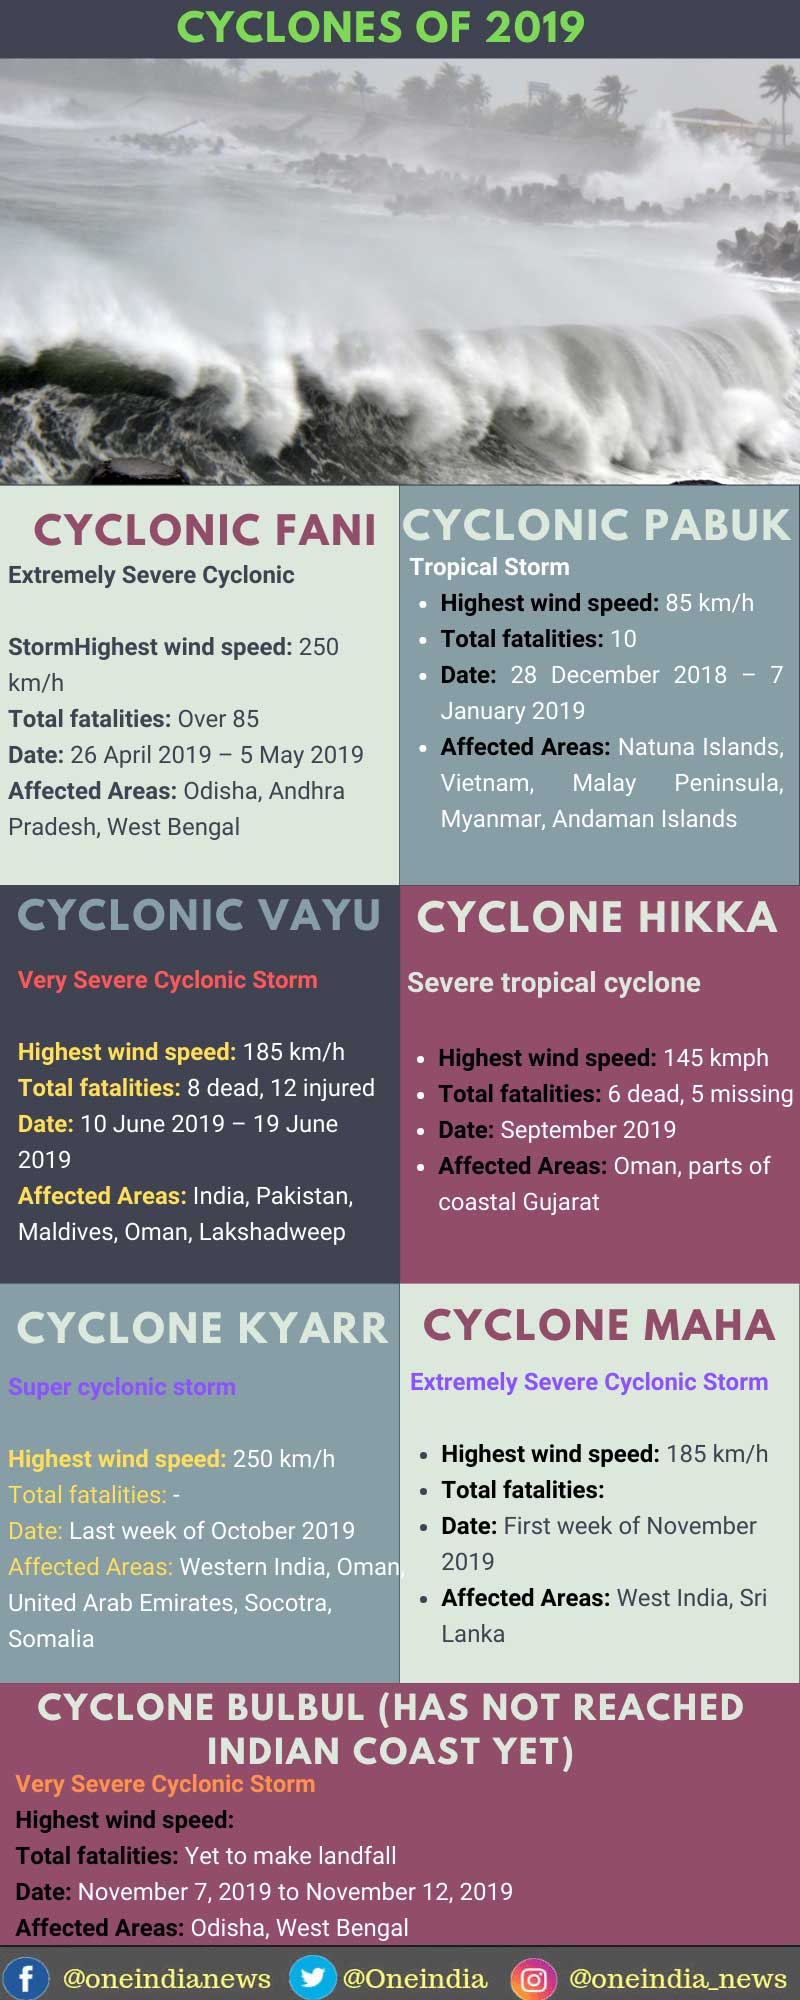 7 cyclones that struck Indian coasts in 2019